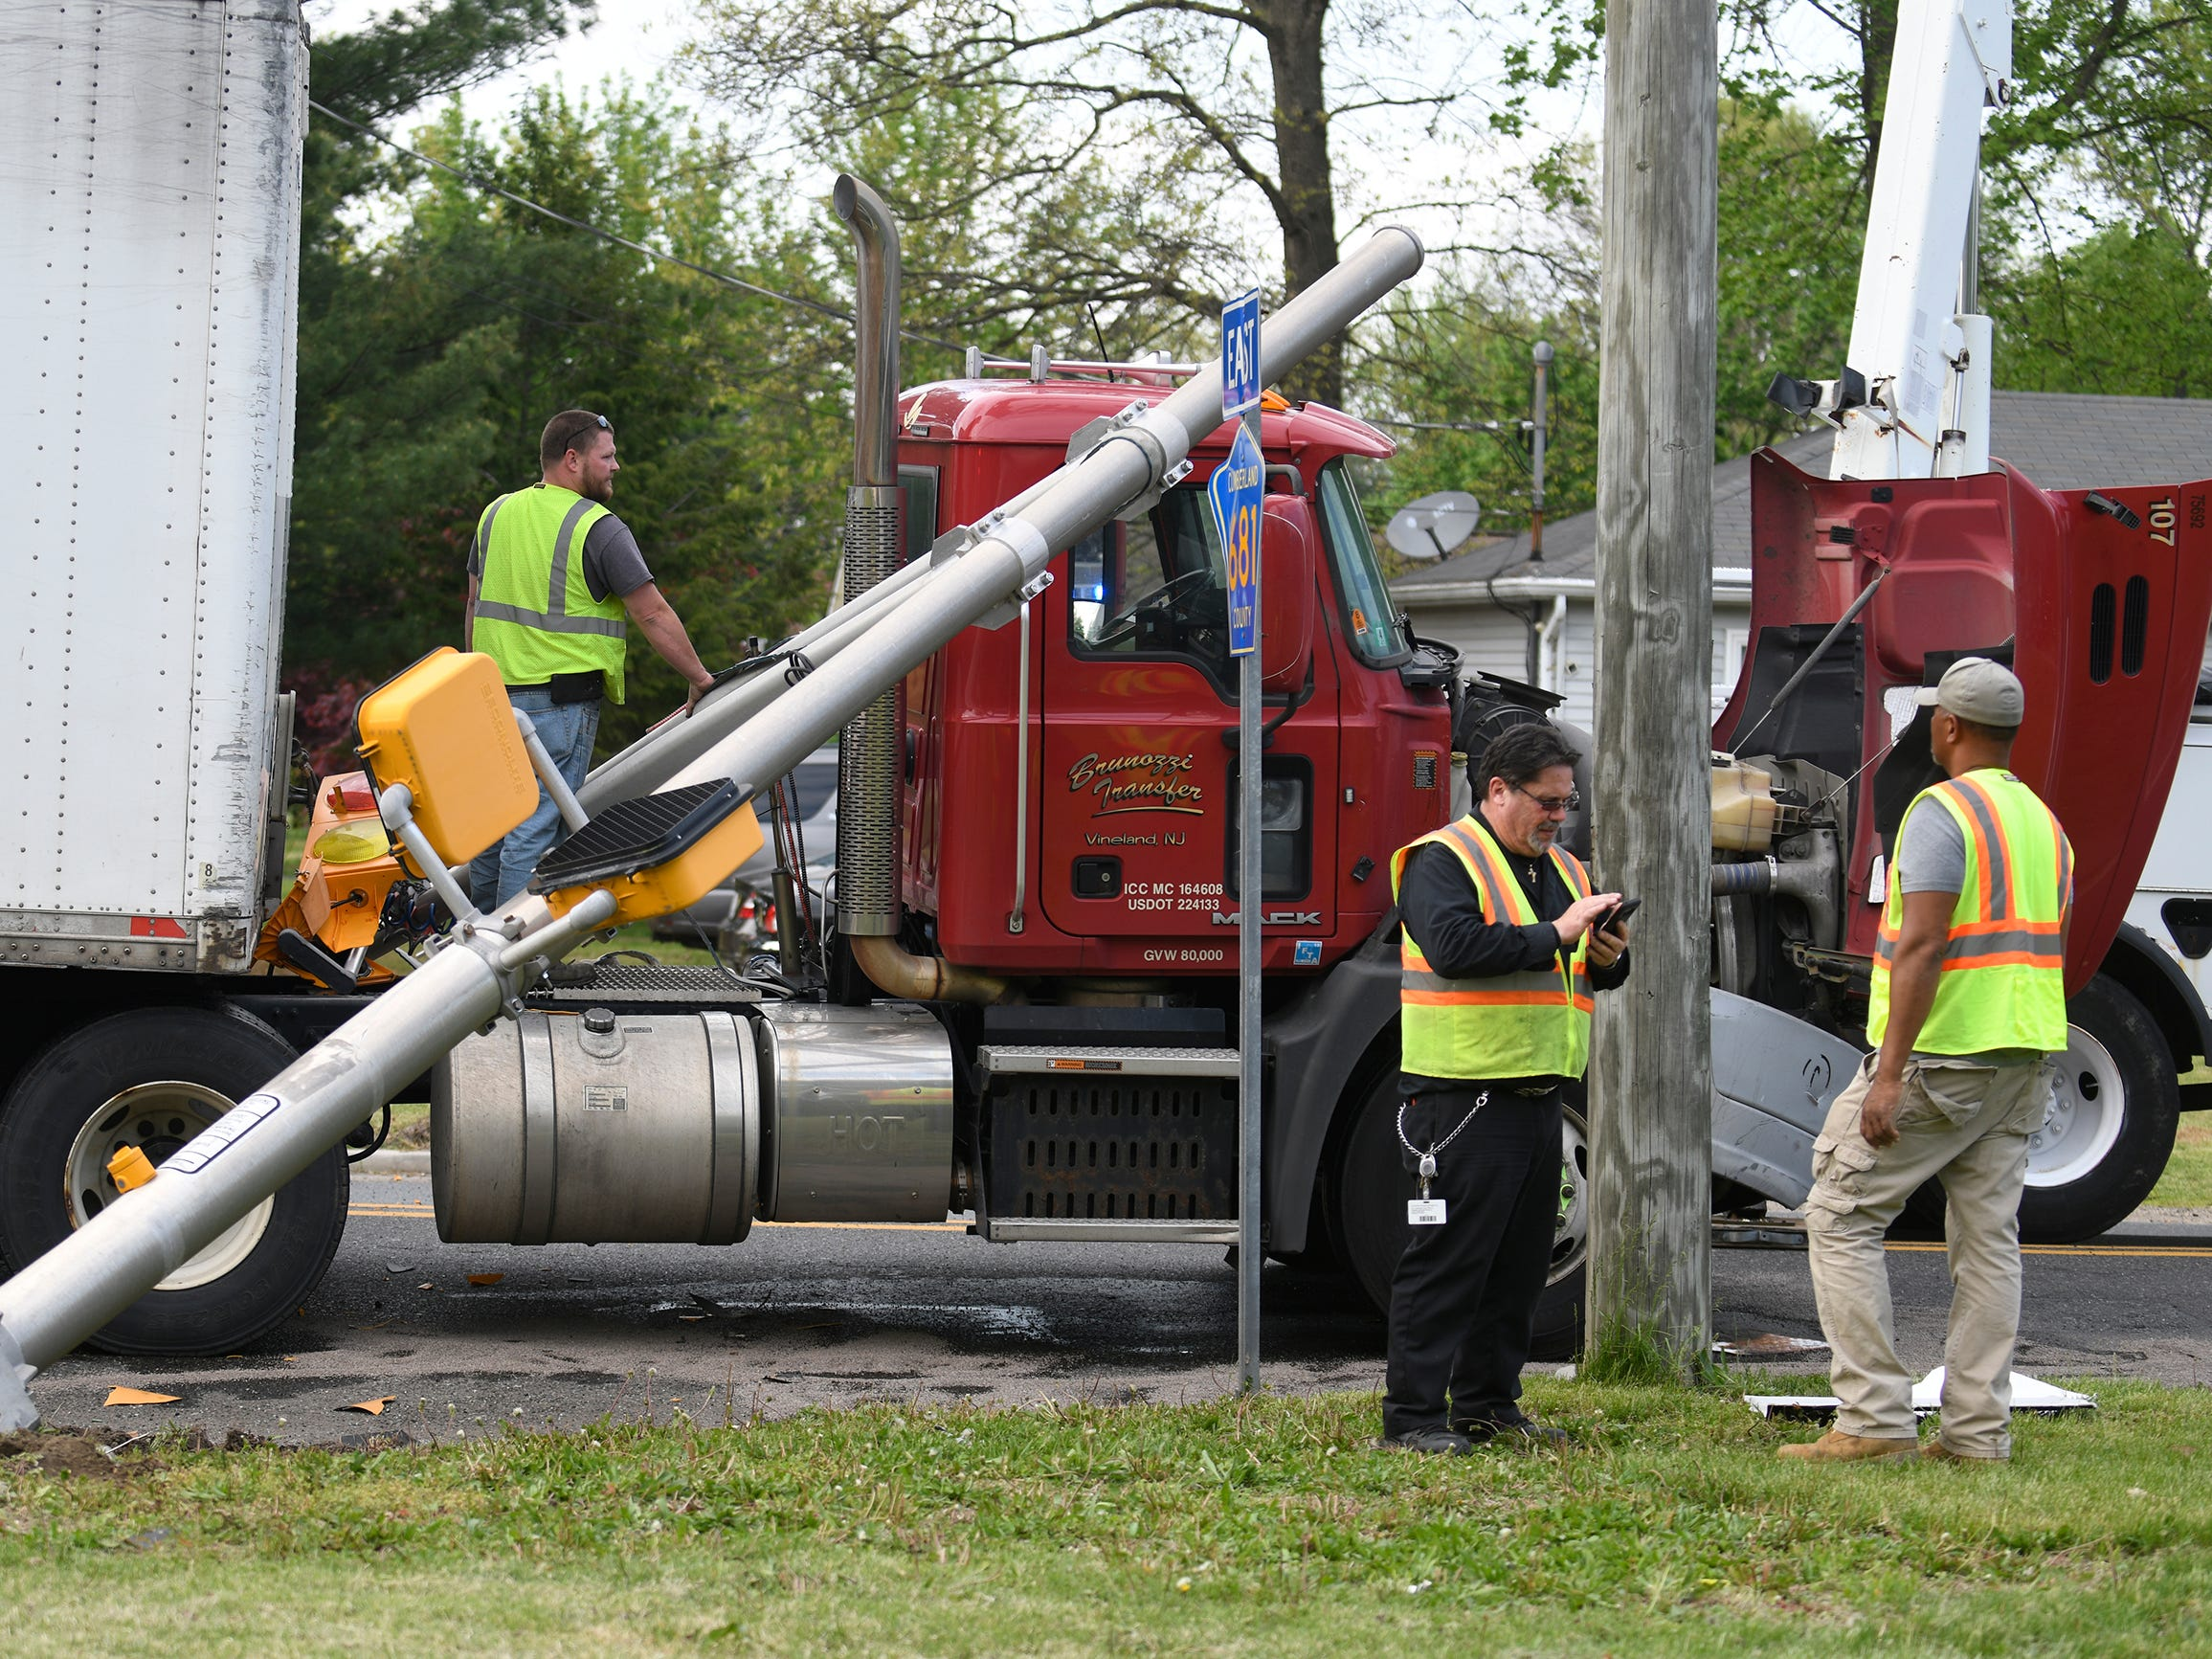 Police were on the scene of a vehicle crash at Oak Road and West Avenue in Vineland on Tuesday, April 30, 2019.